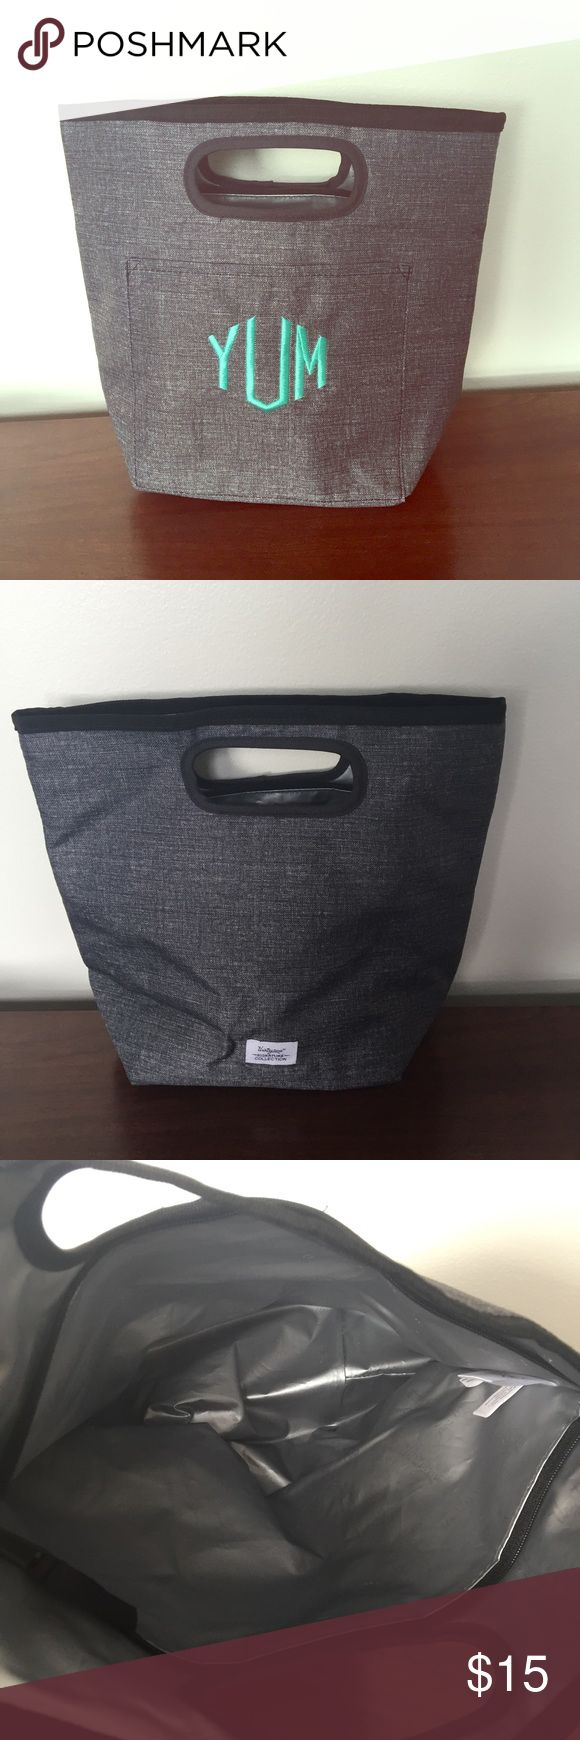 """YUM Lunch Box NWOT: Thirty-One Go-To Thermal in Charcoal Crosshatch Grey pattern with """"Yum"""" embroidery. Wipeable & washable. One exterior pocket. Zipper closure. 11""""H x 12.5""""L at top opening 8""""L at base x 5""""D Thirty-One Other"""